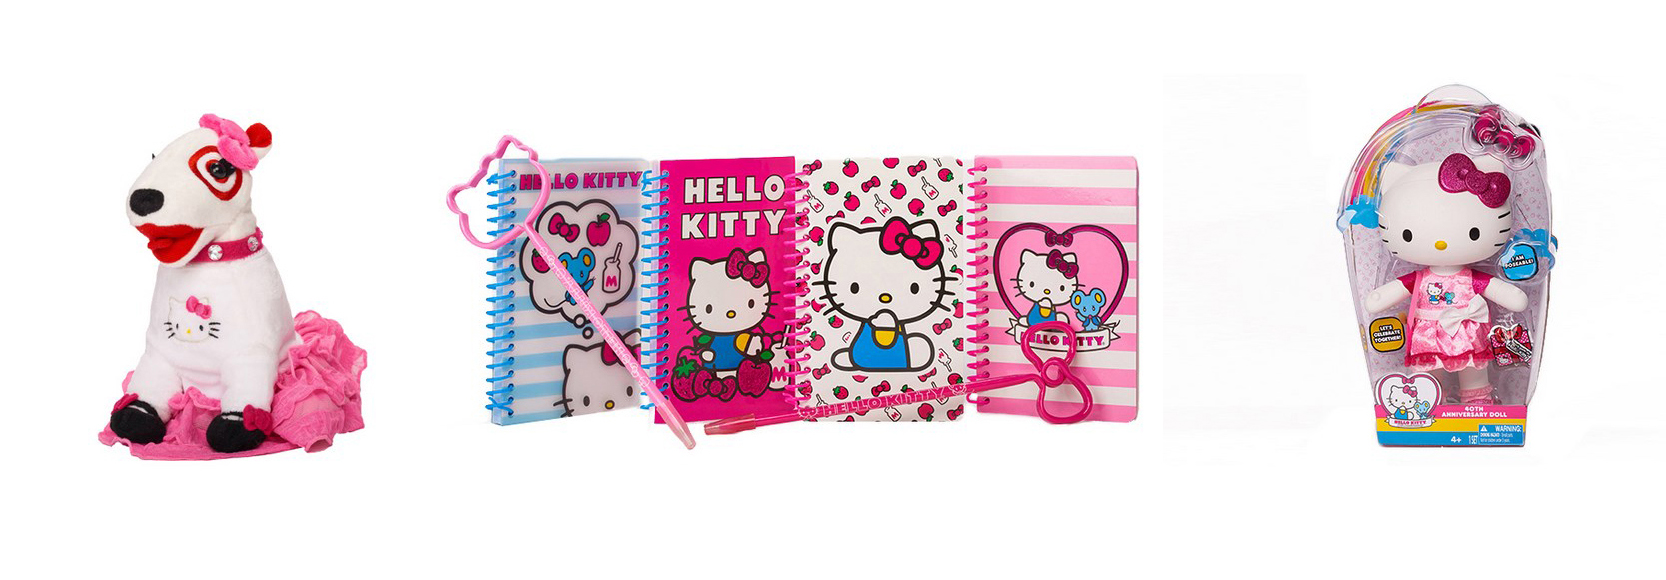 Hello Kitty Toys At Target : Target hello kitty th anniversary retrenders